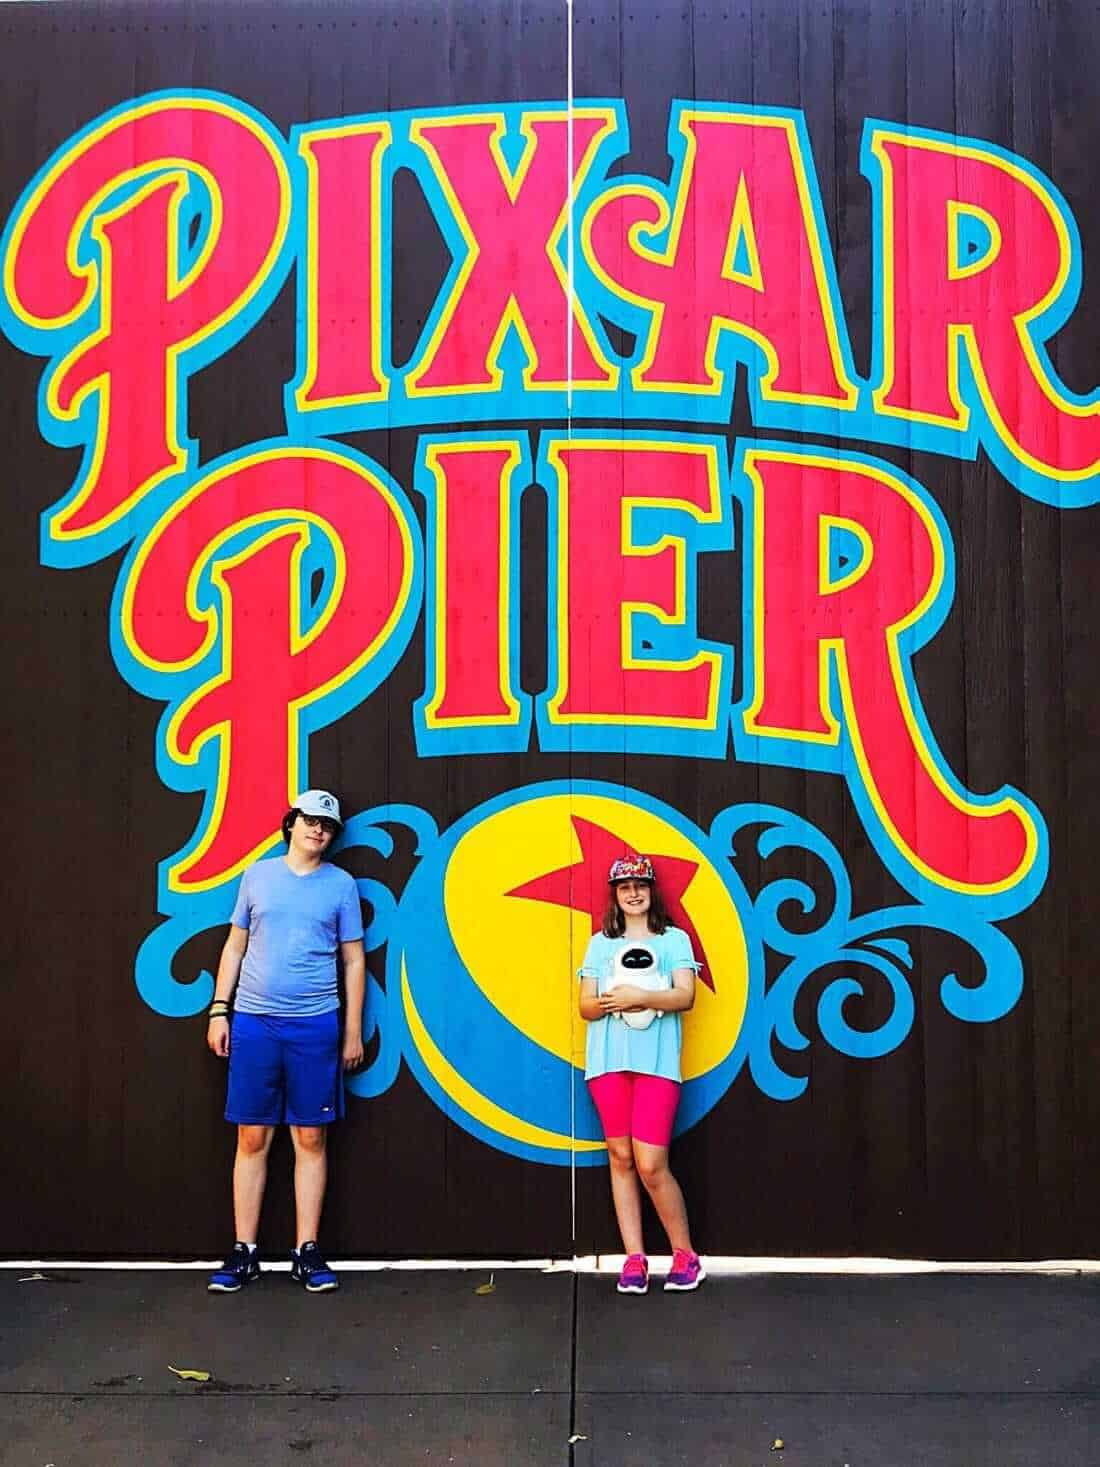 PIxar Pier background in photograph